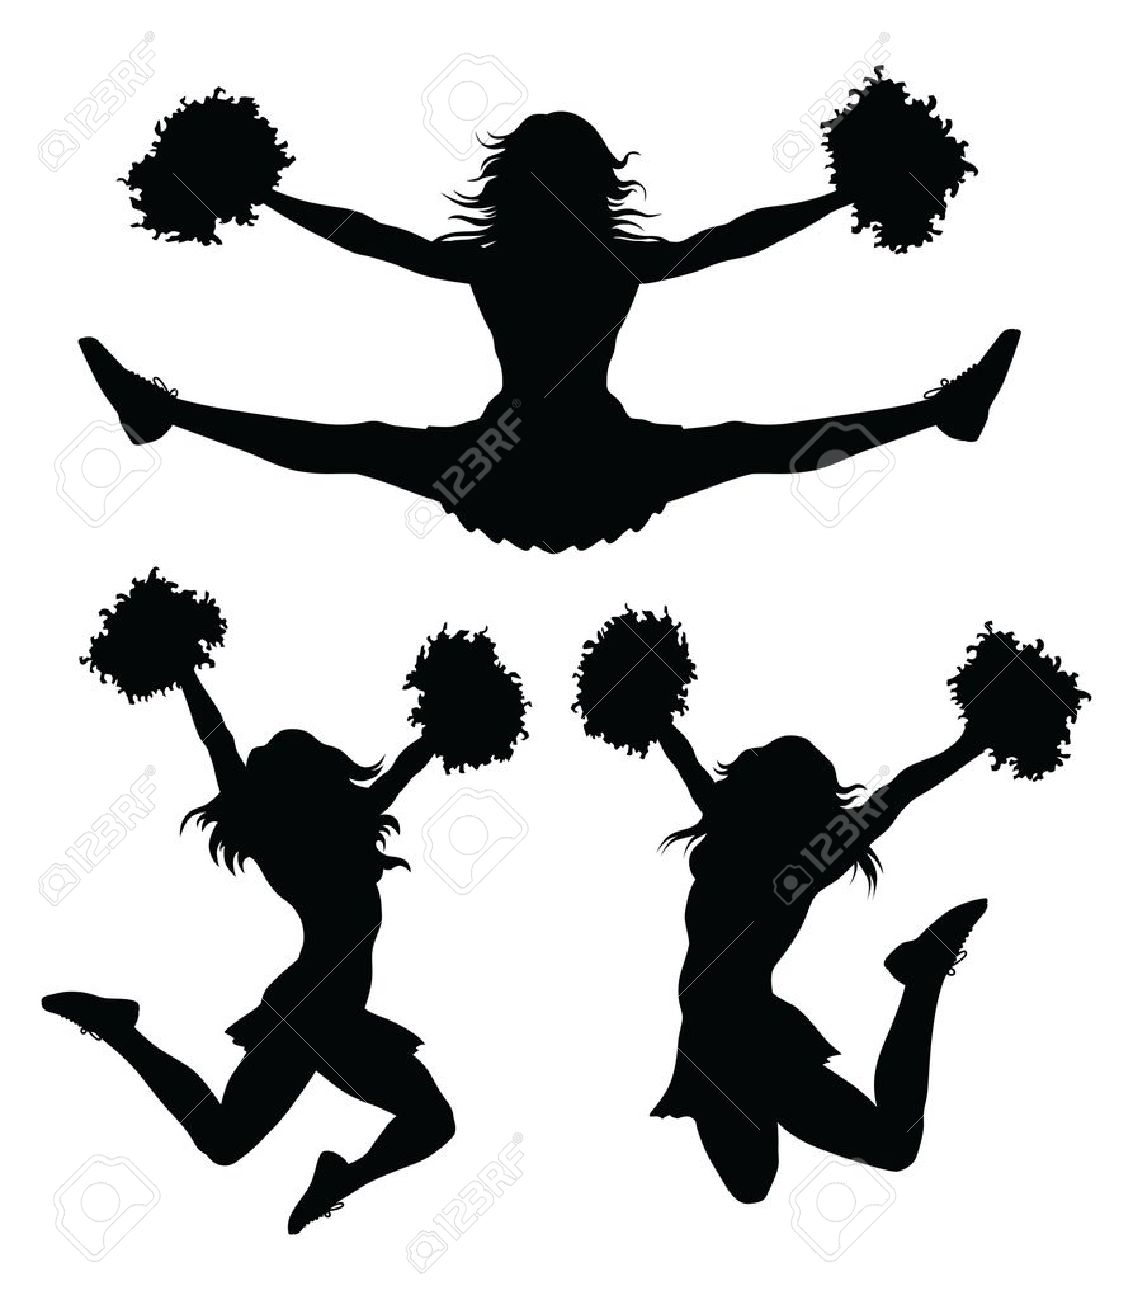 Cheer clipart toe touch. Silhouette at getdrawings com